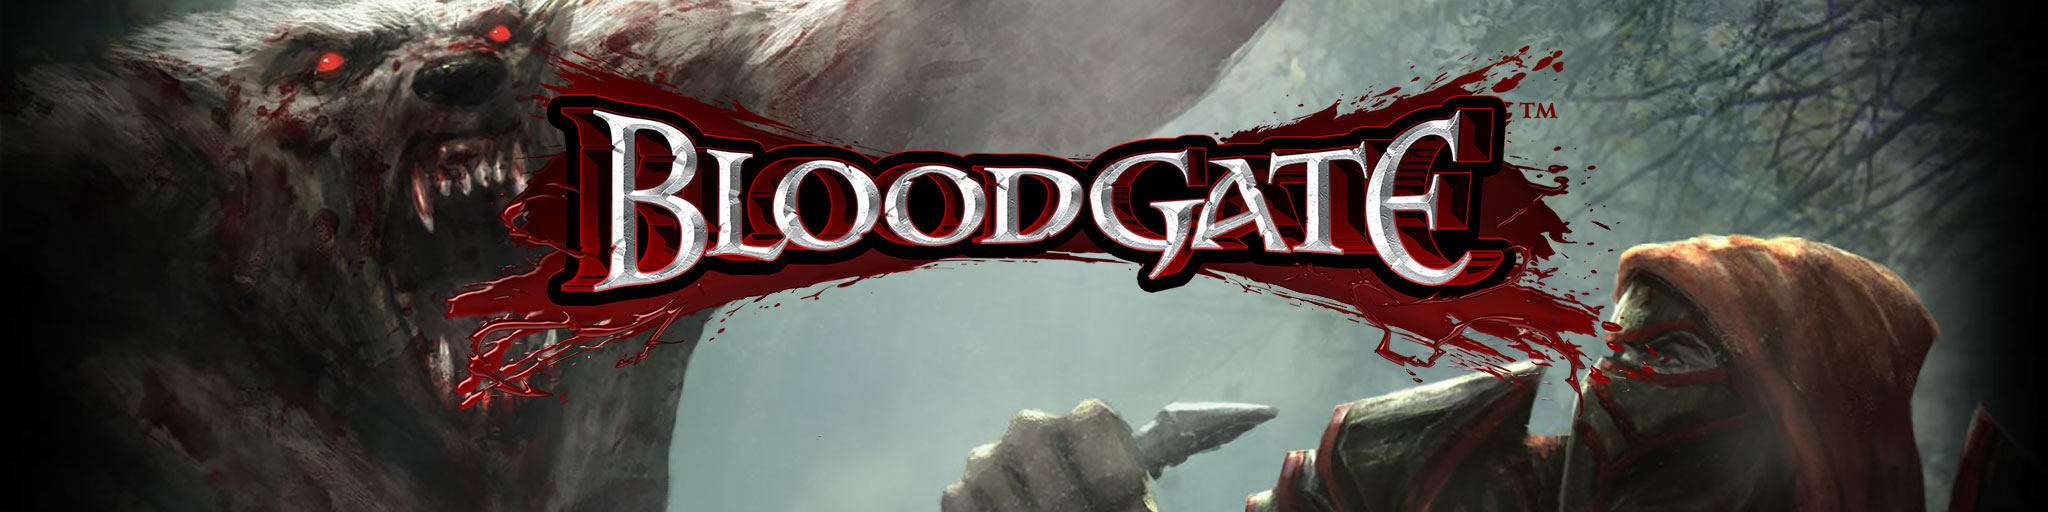 Blood Gate feature image